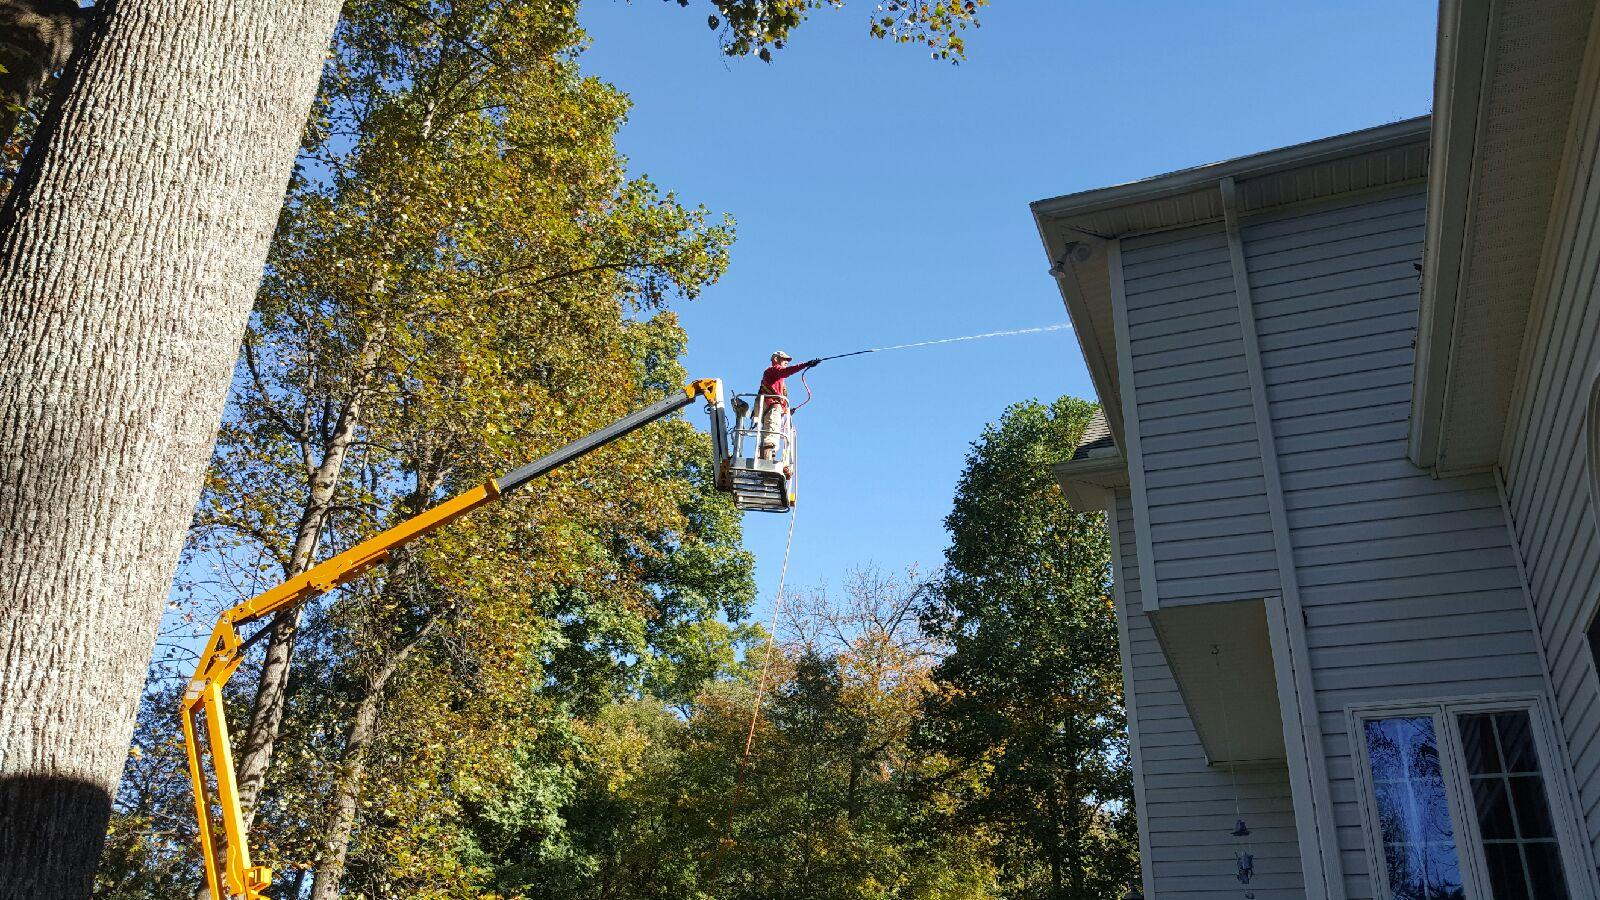 Boom Lift | Soft Wash Roof Service in Hagerstown MD